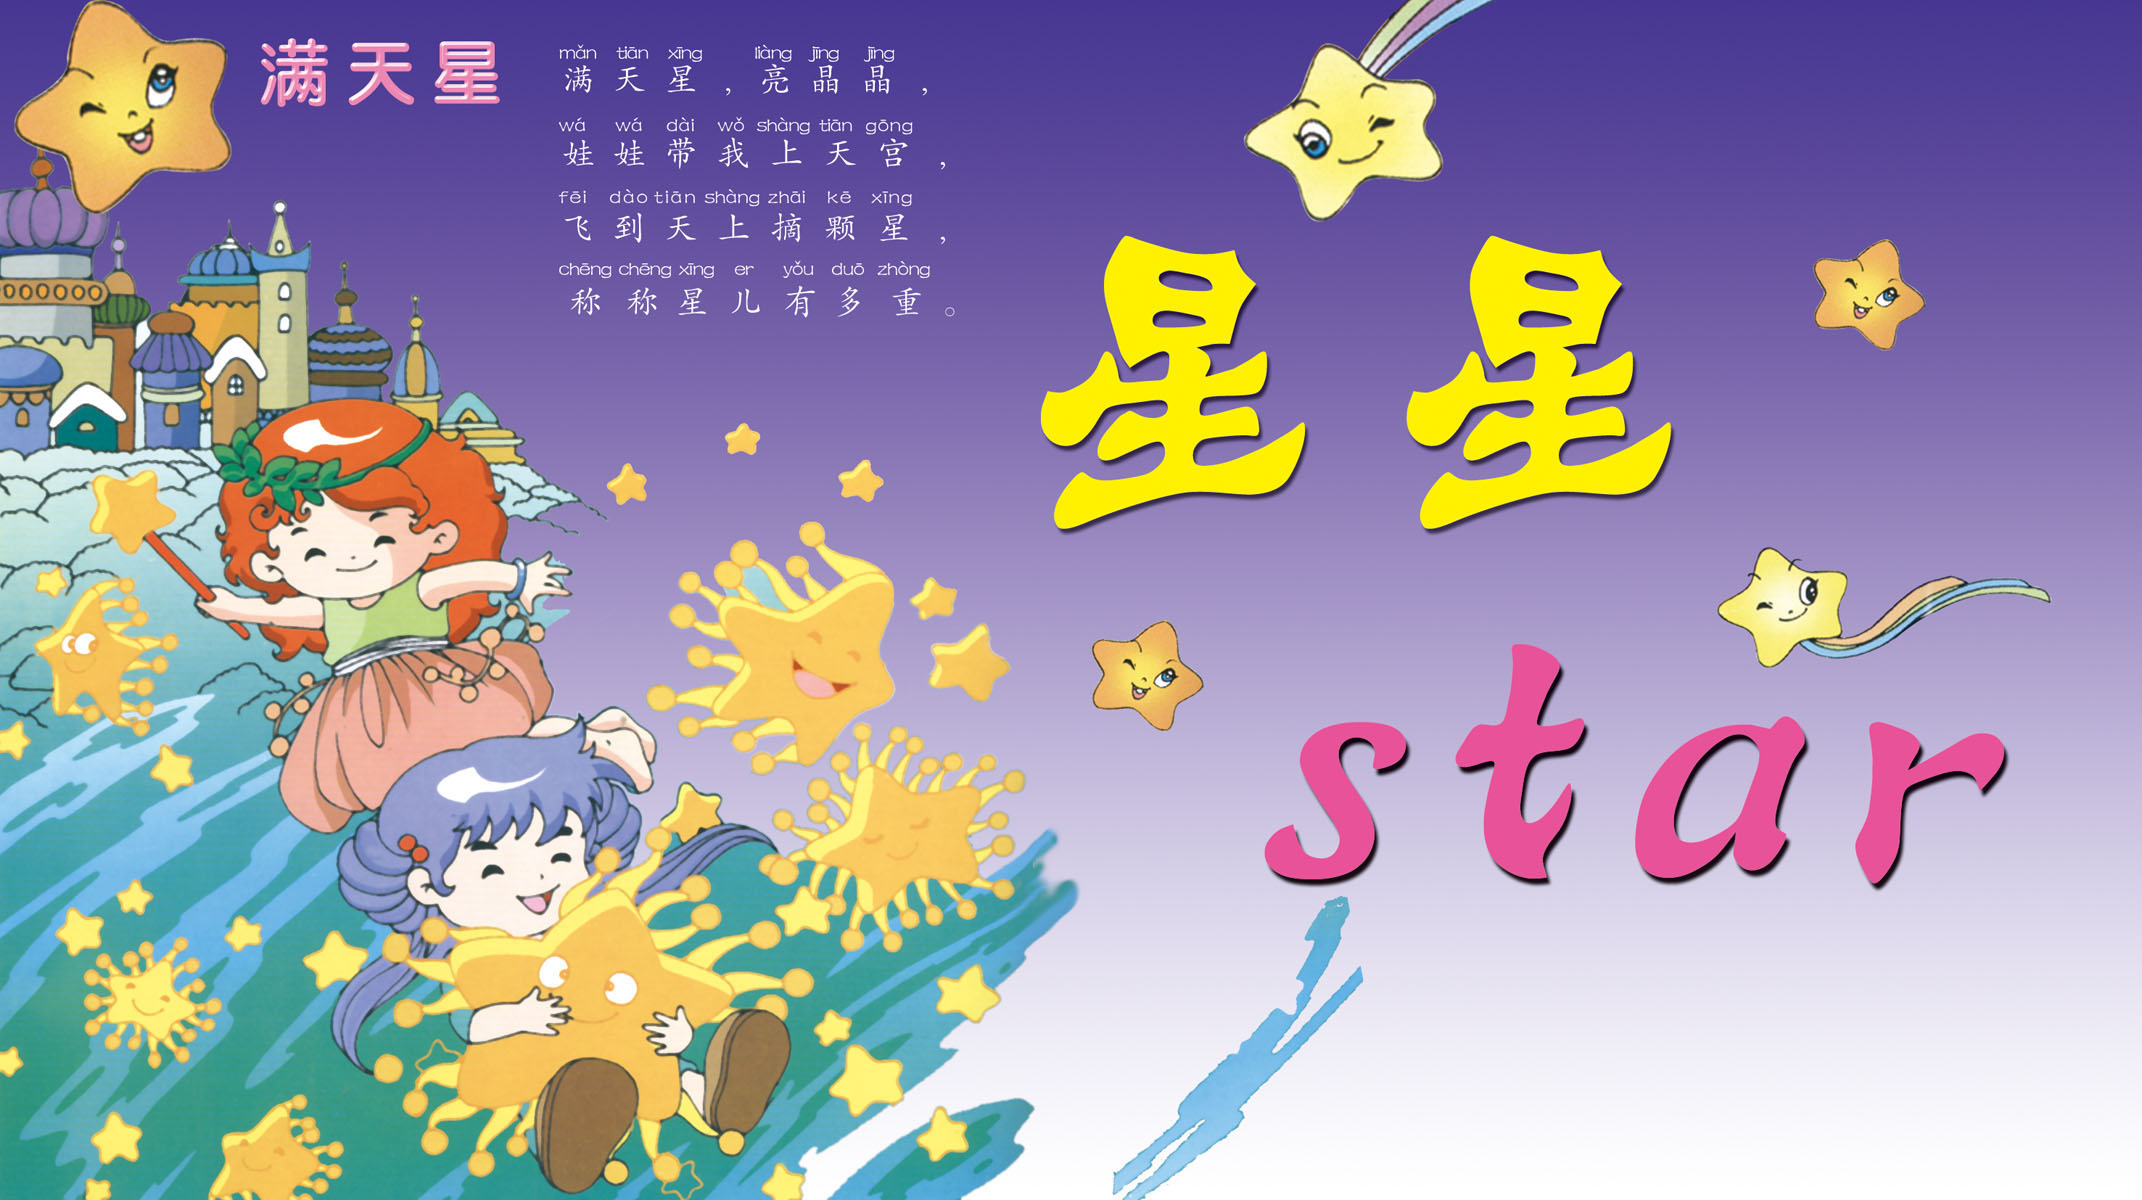 Get Quotations Poster 626 Posters Material Panels 114 Kindergarten Nursery Rhyme Stars